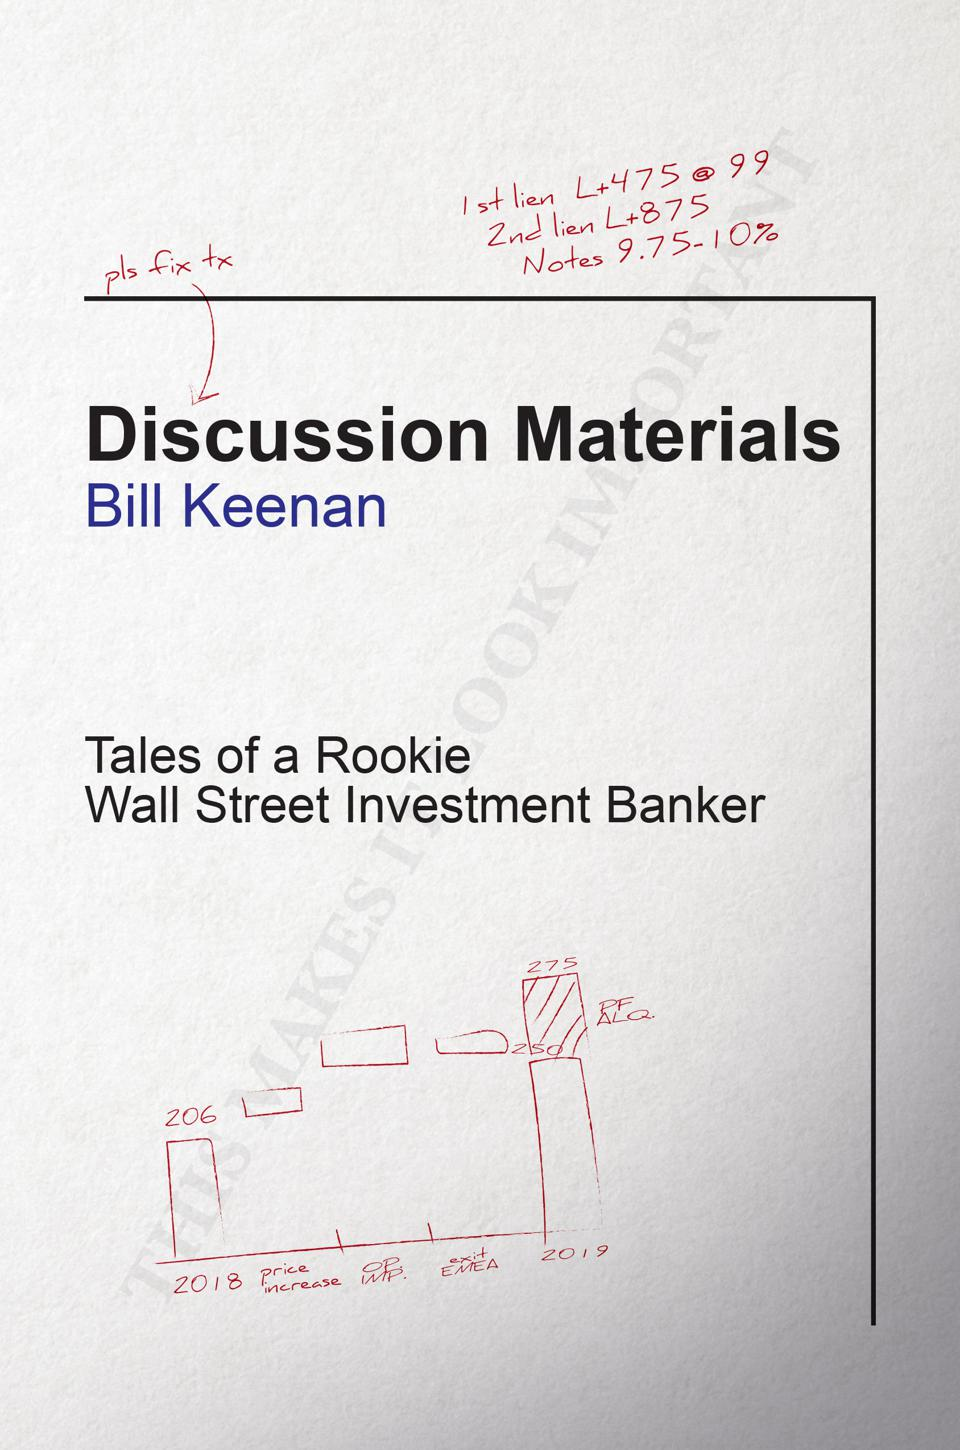 Discussion Materials by Bill Keenan